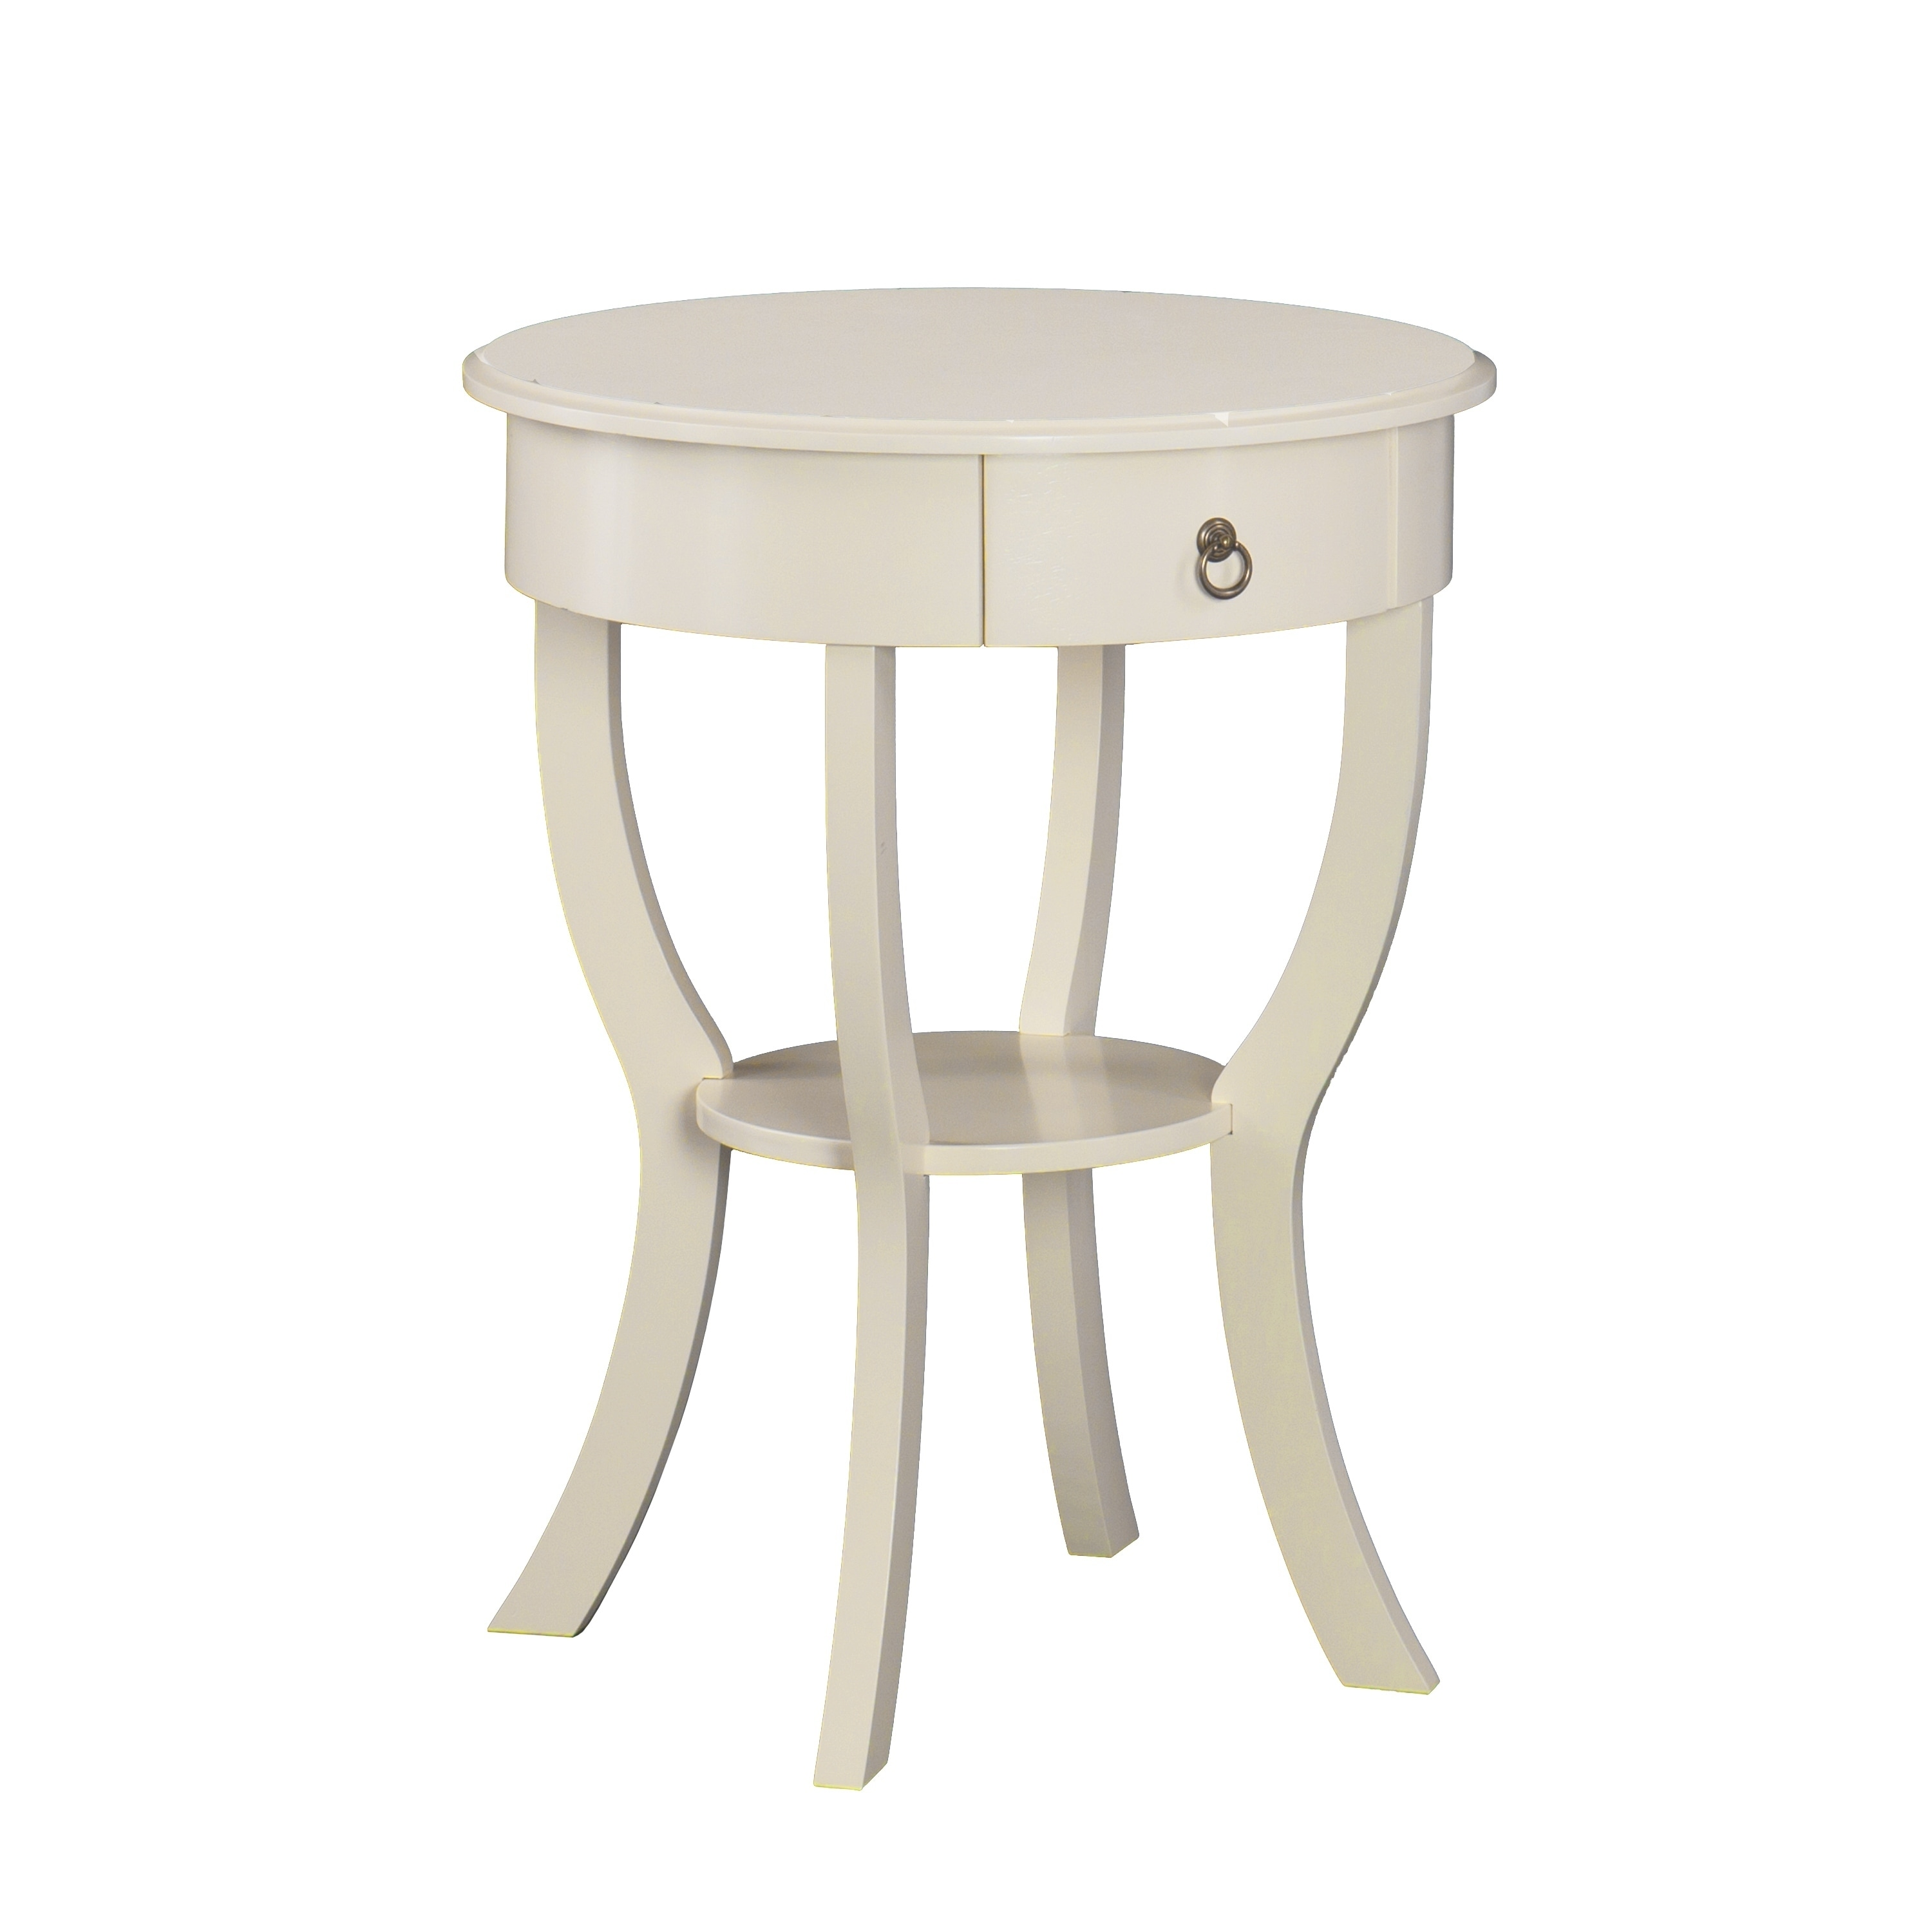 harper blvd lyman tall accent table with storage free shipping today purple tiffany style lamps gray wash coffee wood hairpin glass top outdoor blue bedside bar tables silver